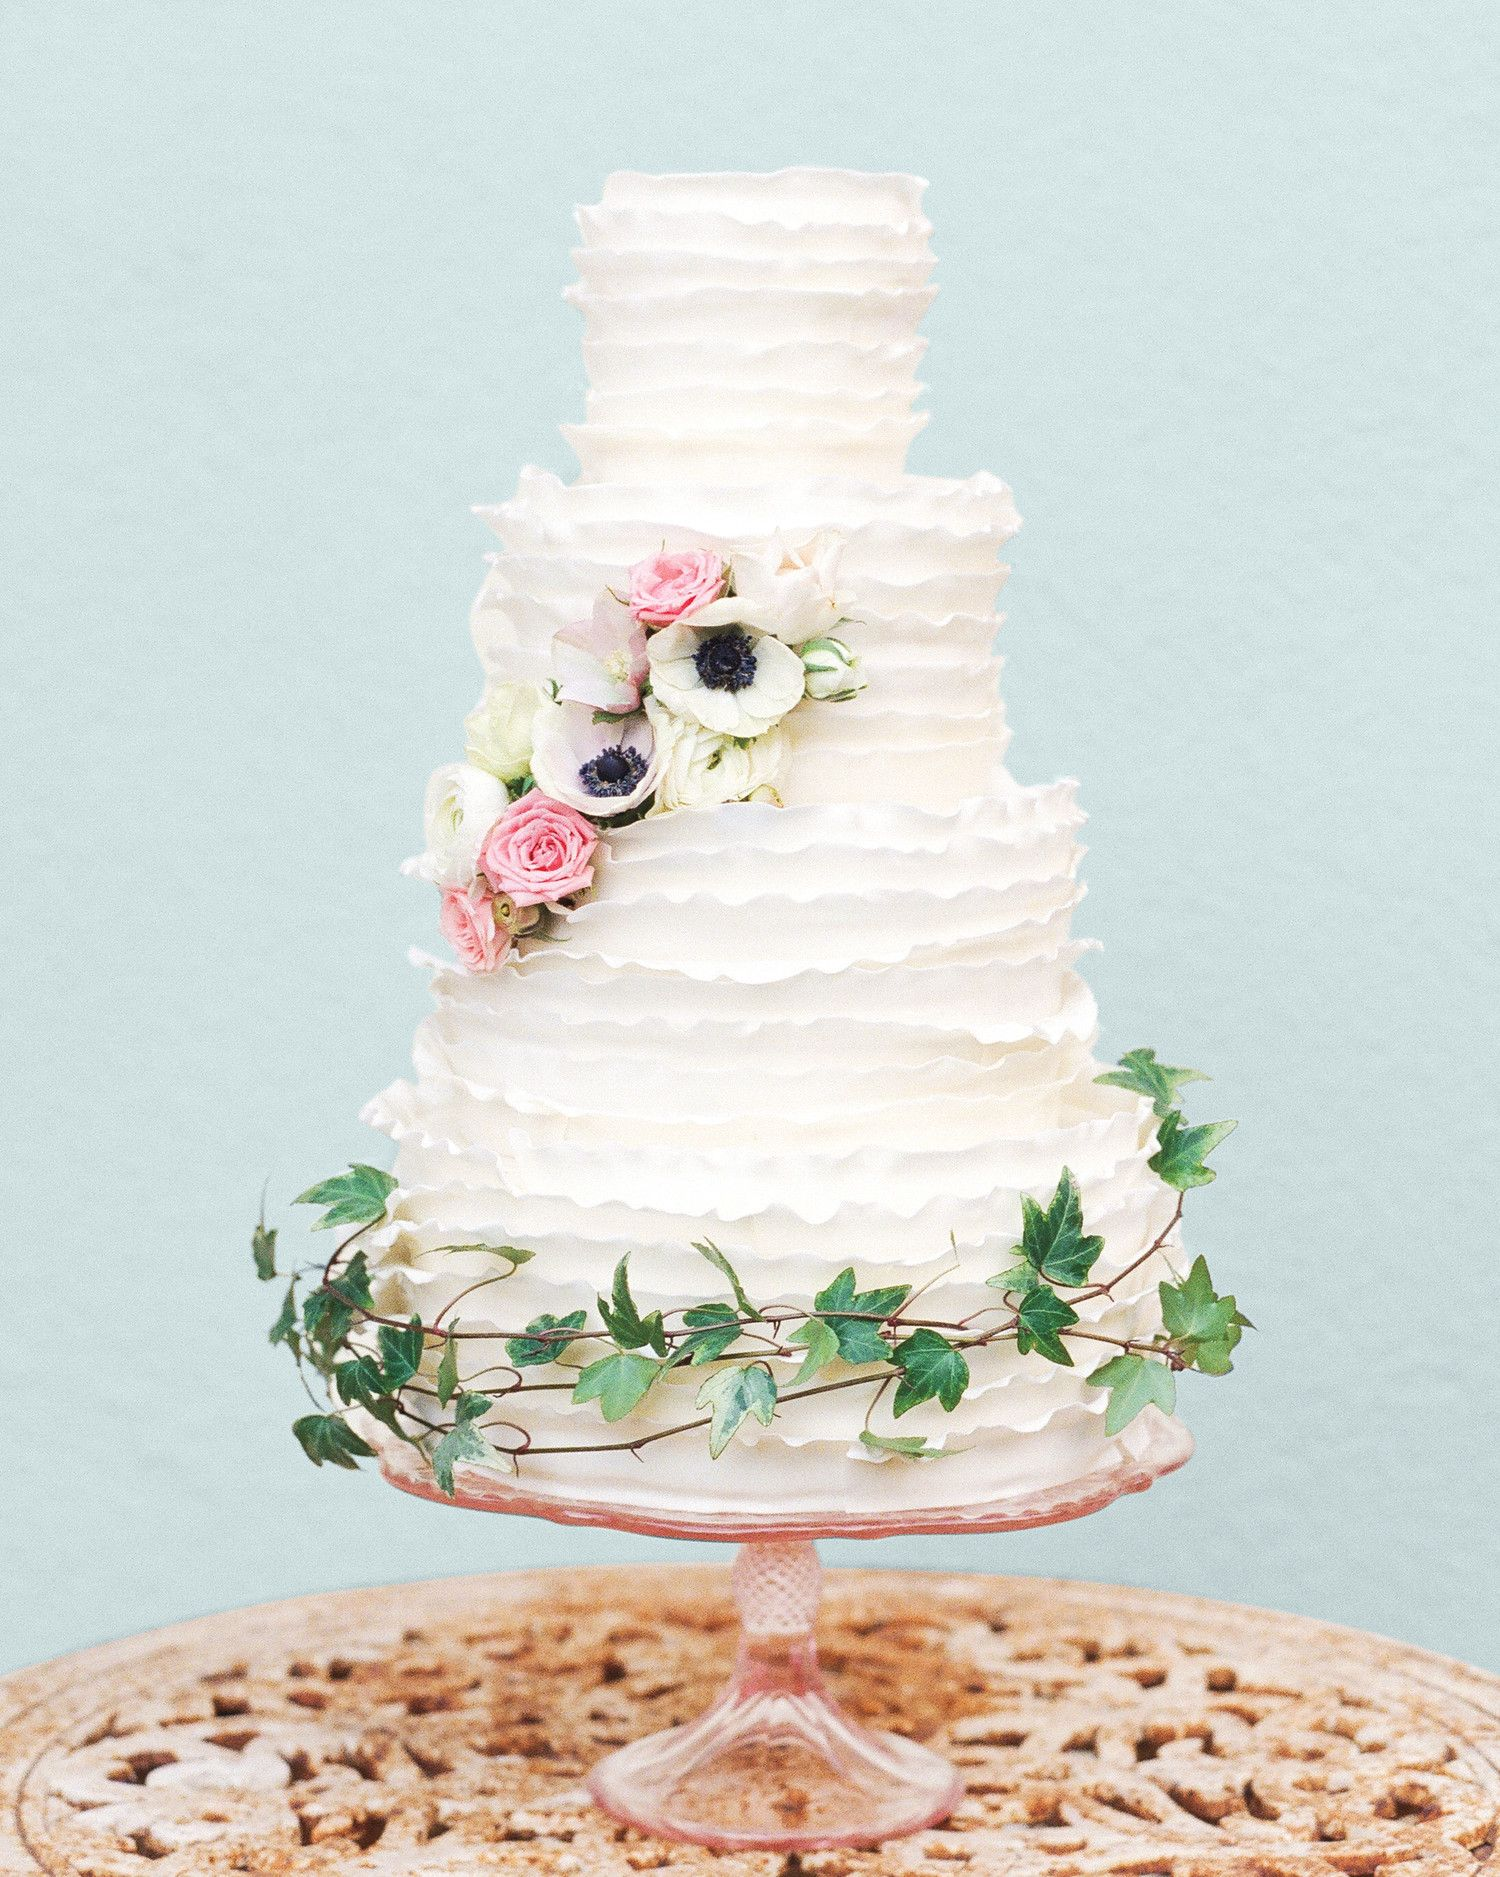 32 Amazing Wedding Cakes You Have to See to Believe | White anemone ...